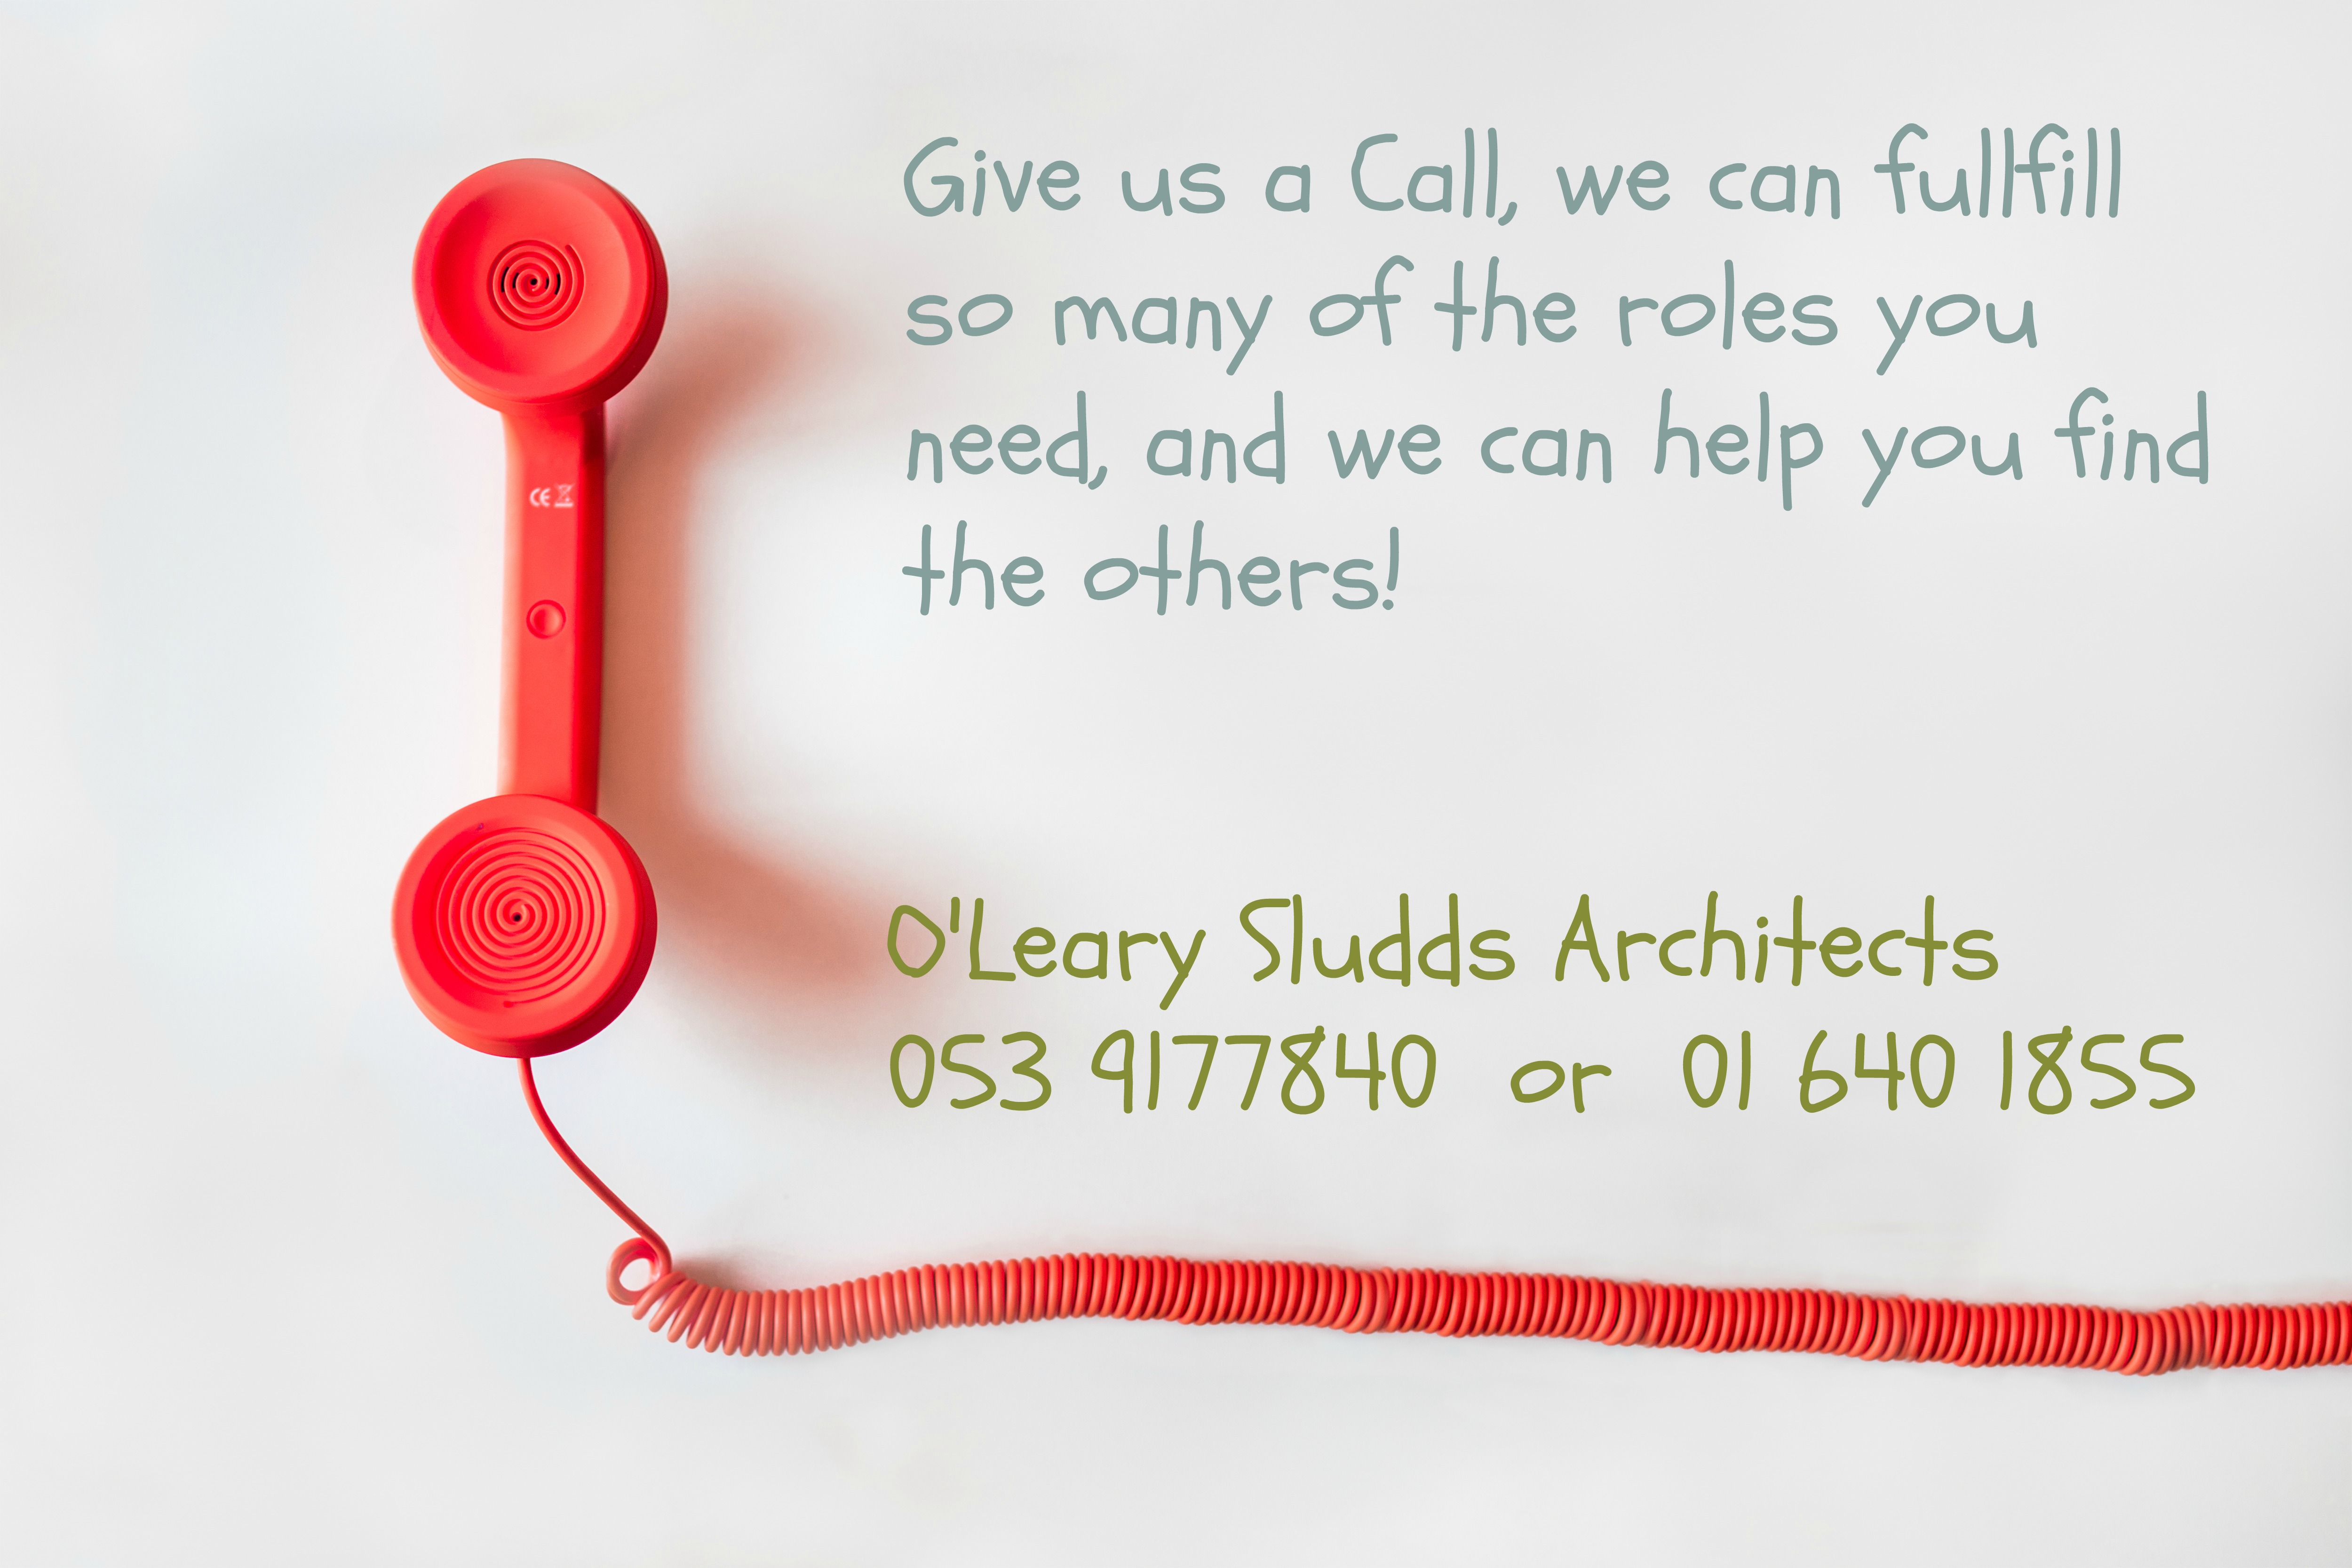 Oleary Sludds Architects Contact Details